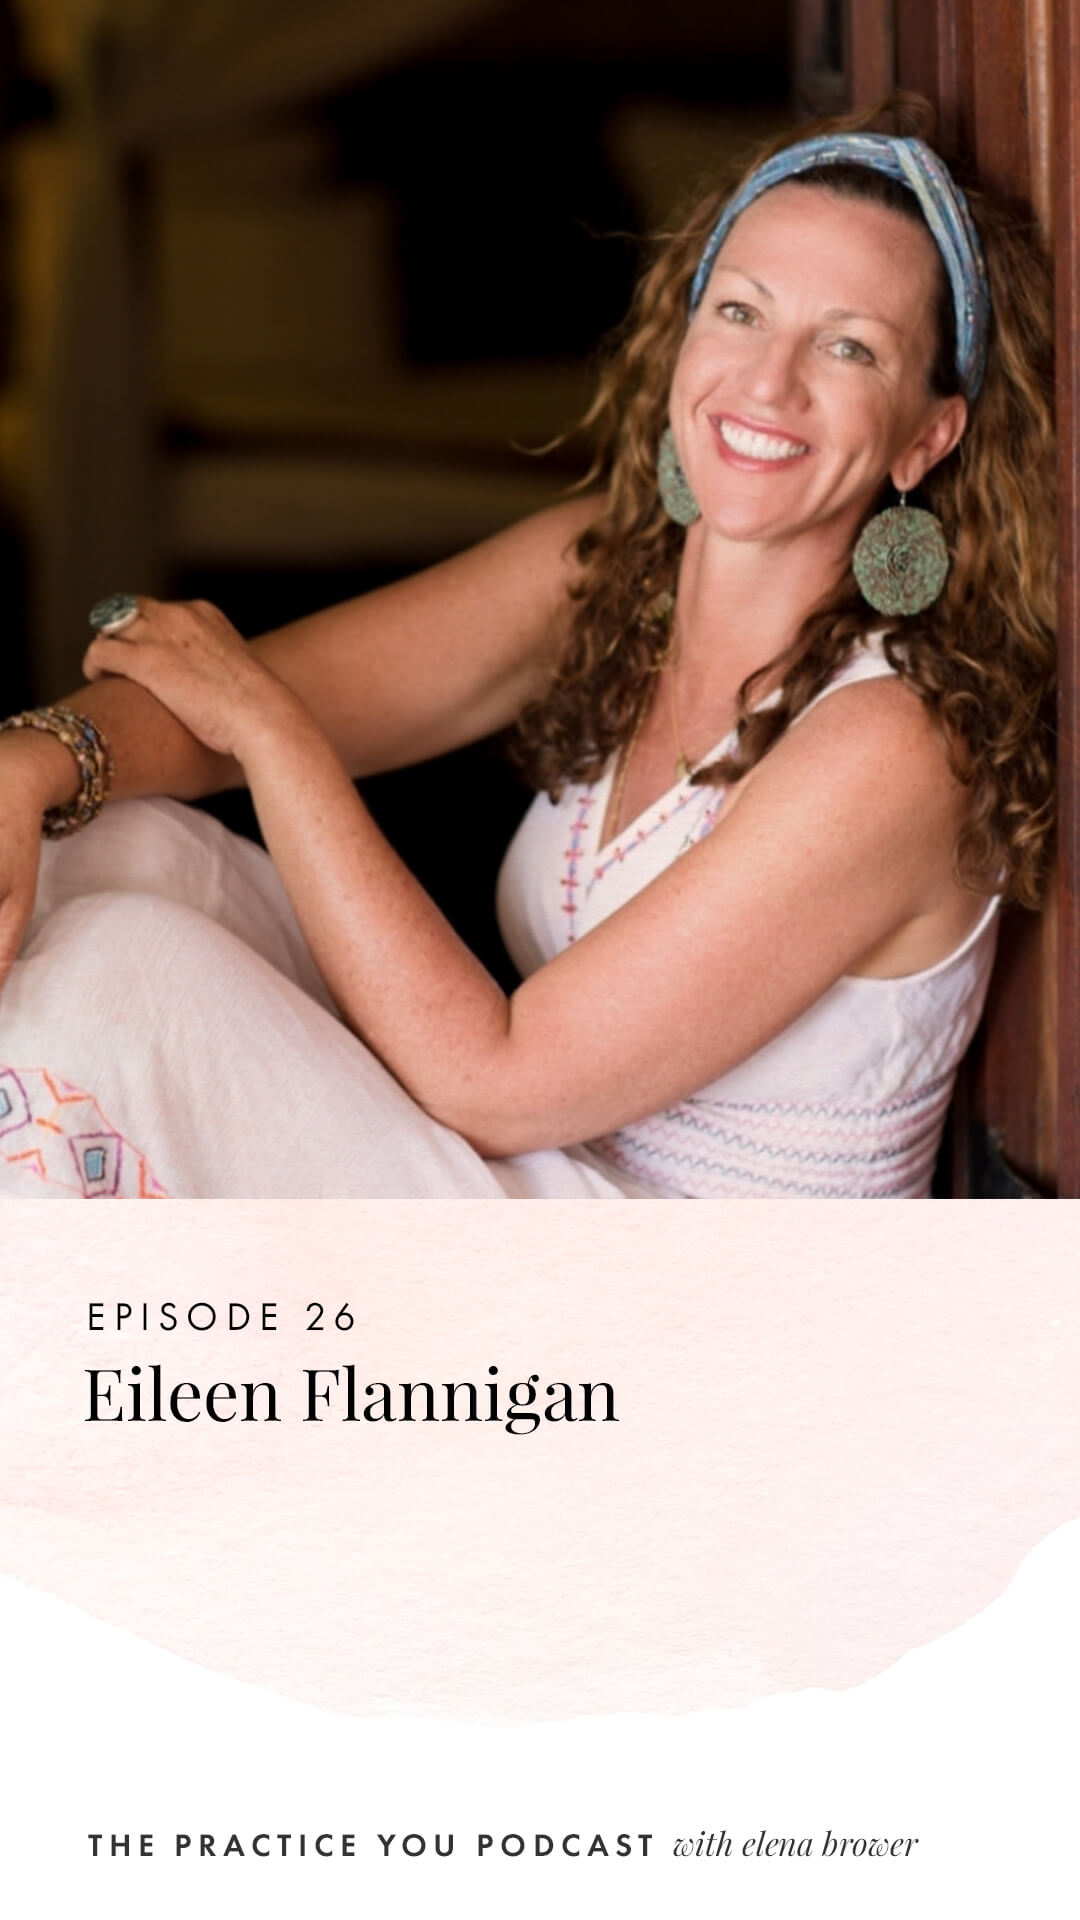 Episode 26: Eileen Flannigan on the Practice You Podcast with Elena Brower